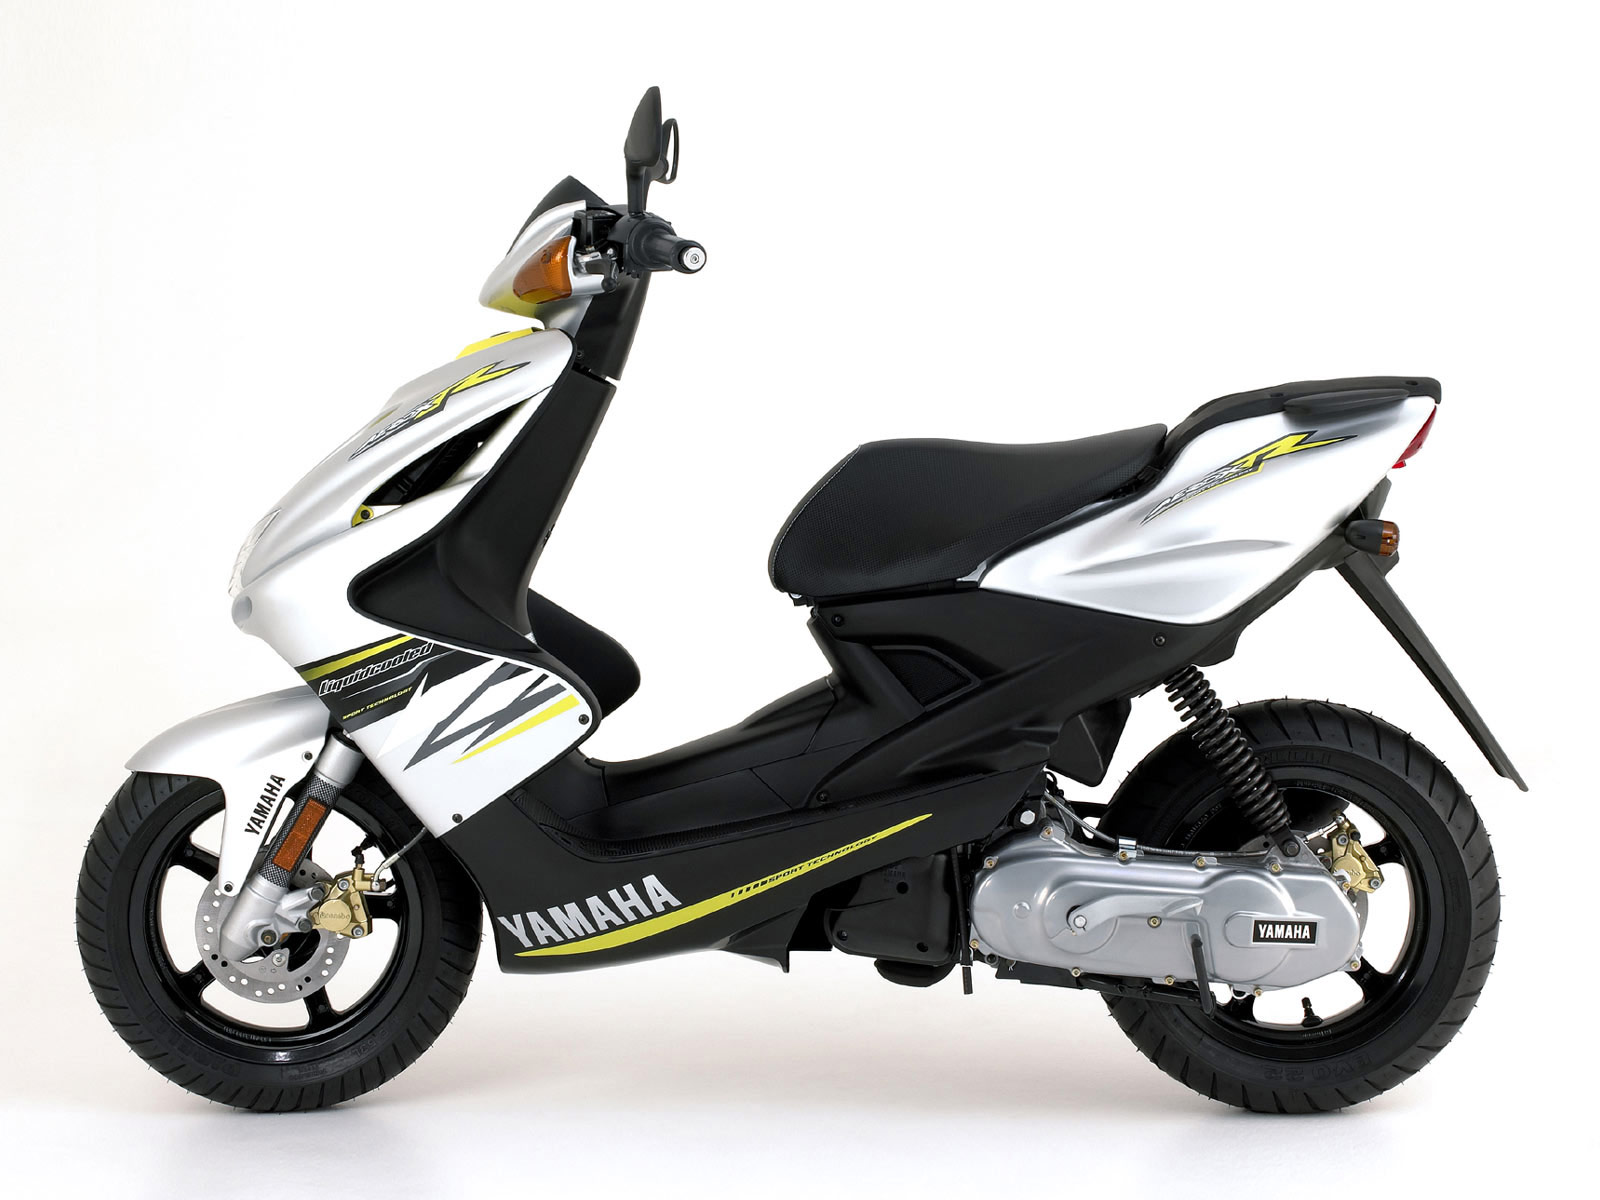 2006 yamaha yq50 aerox r scooter pictures insurance info. Black Bedroom Furniture Sets. Home Design Ideas